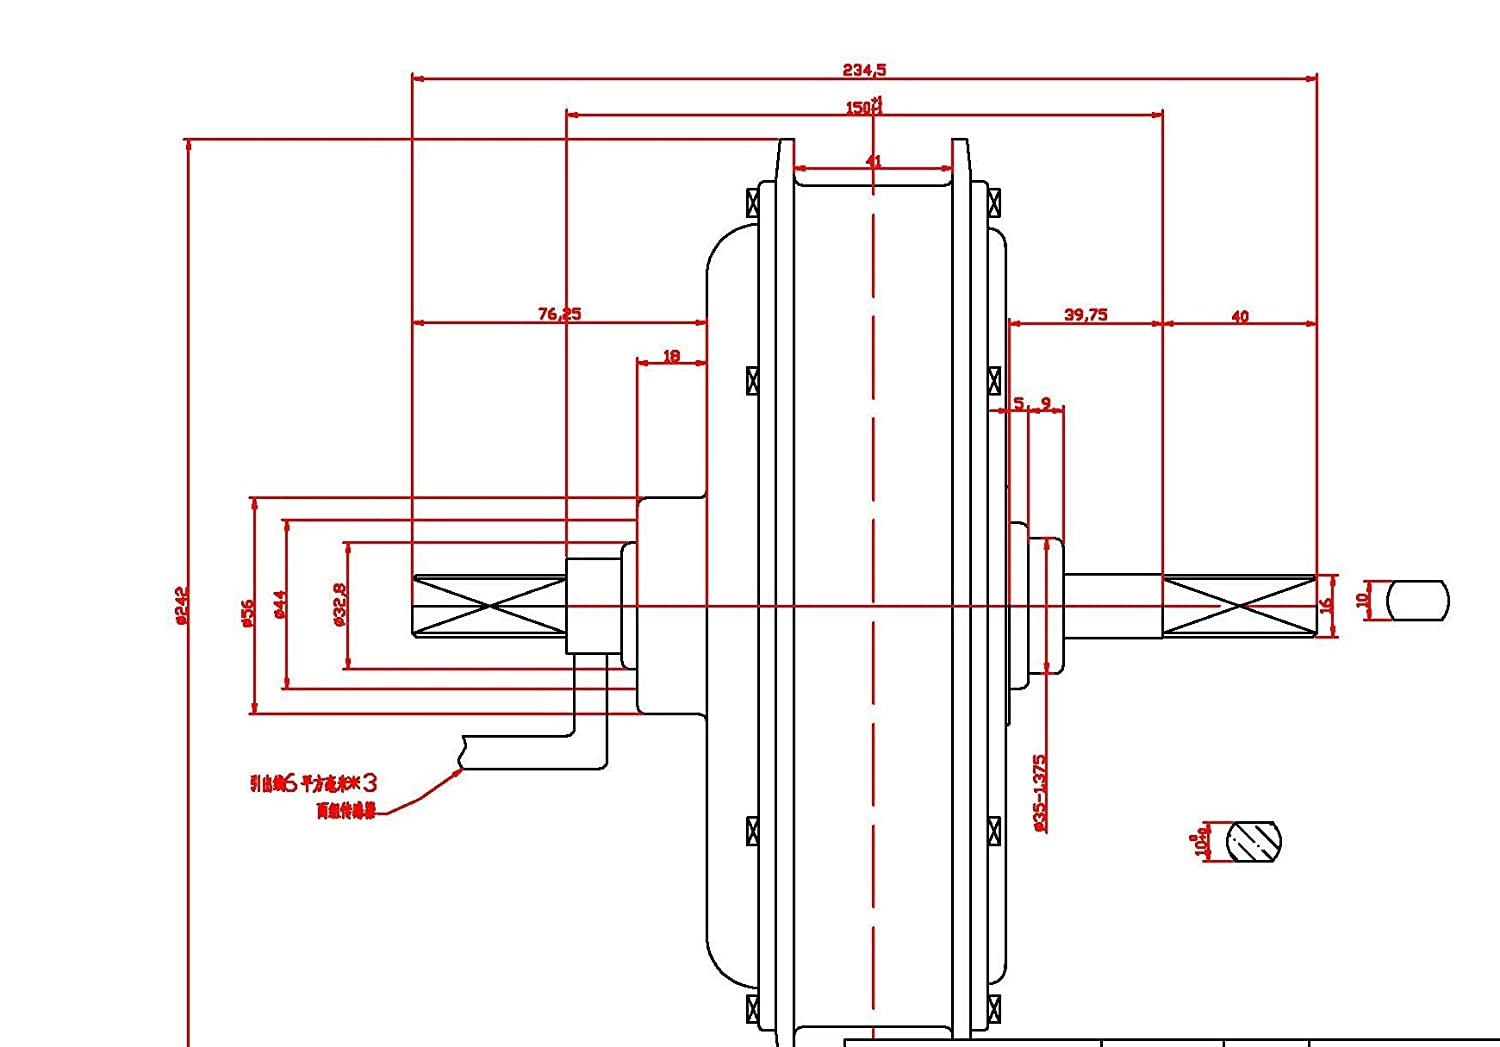 71f6kXTQ95L._SL1500_ 72v wiring diagram great design of wiring diagram \u2022